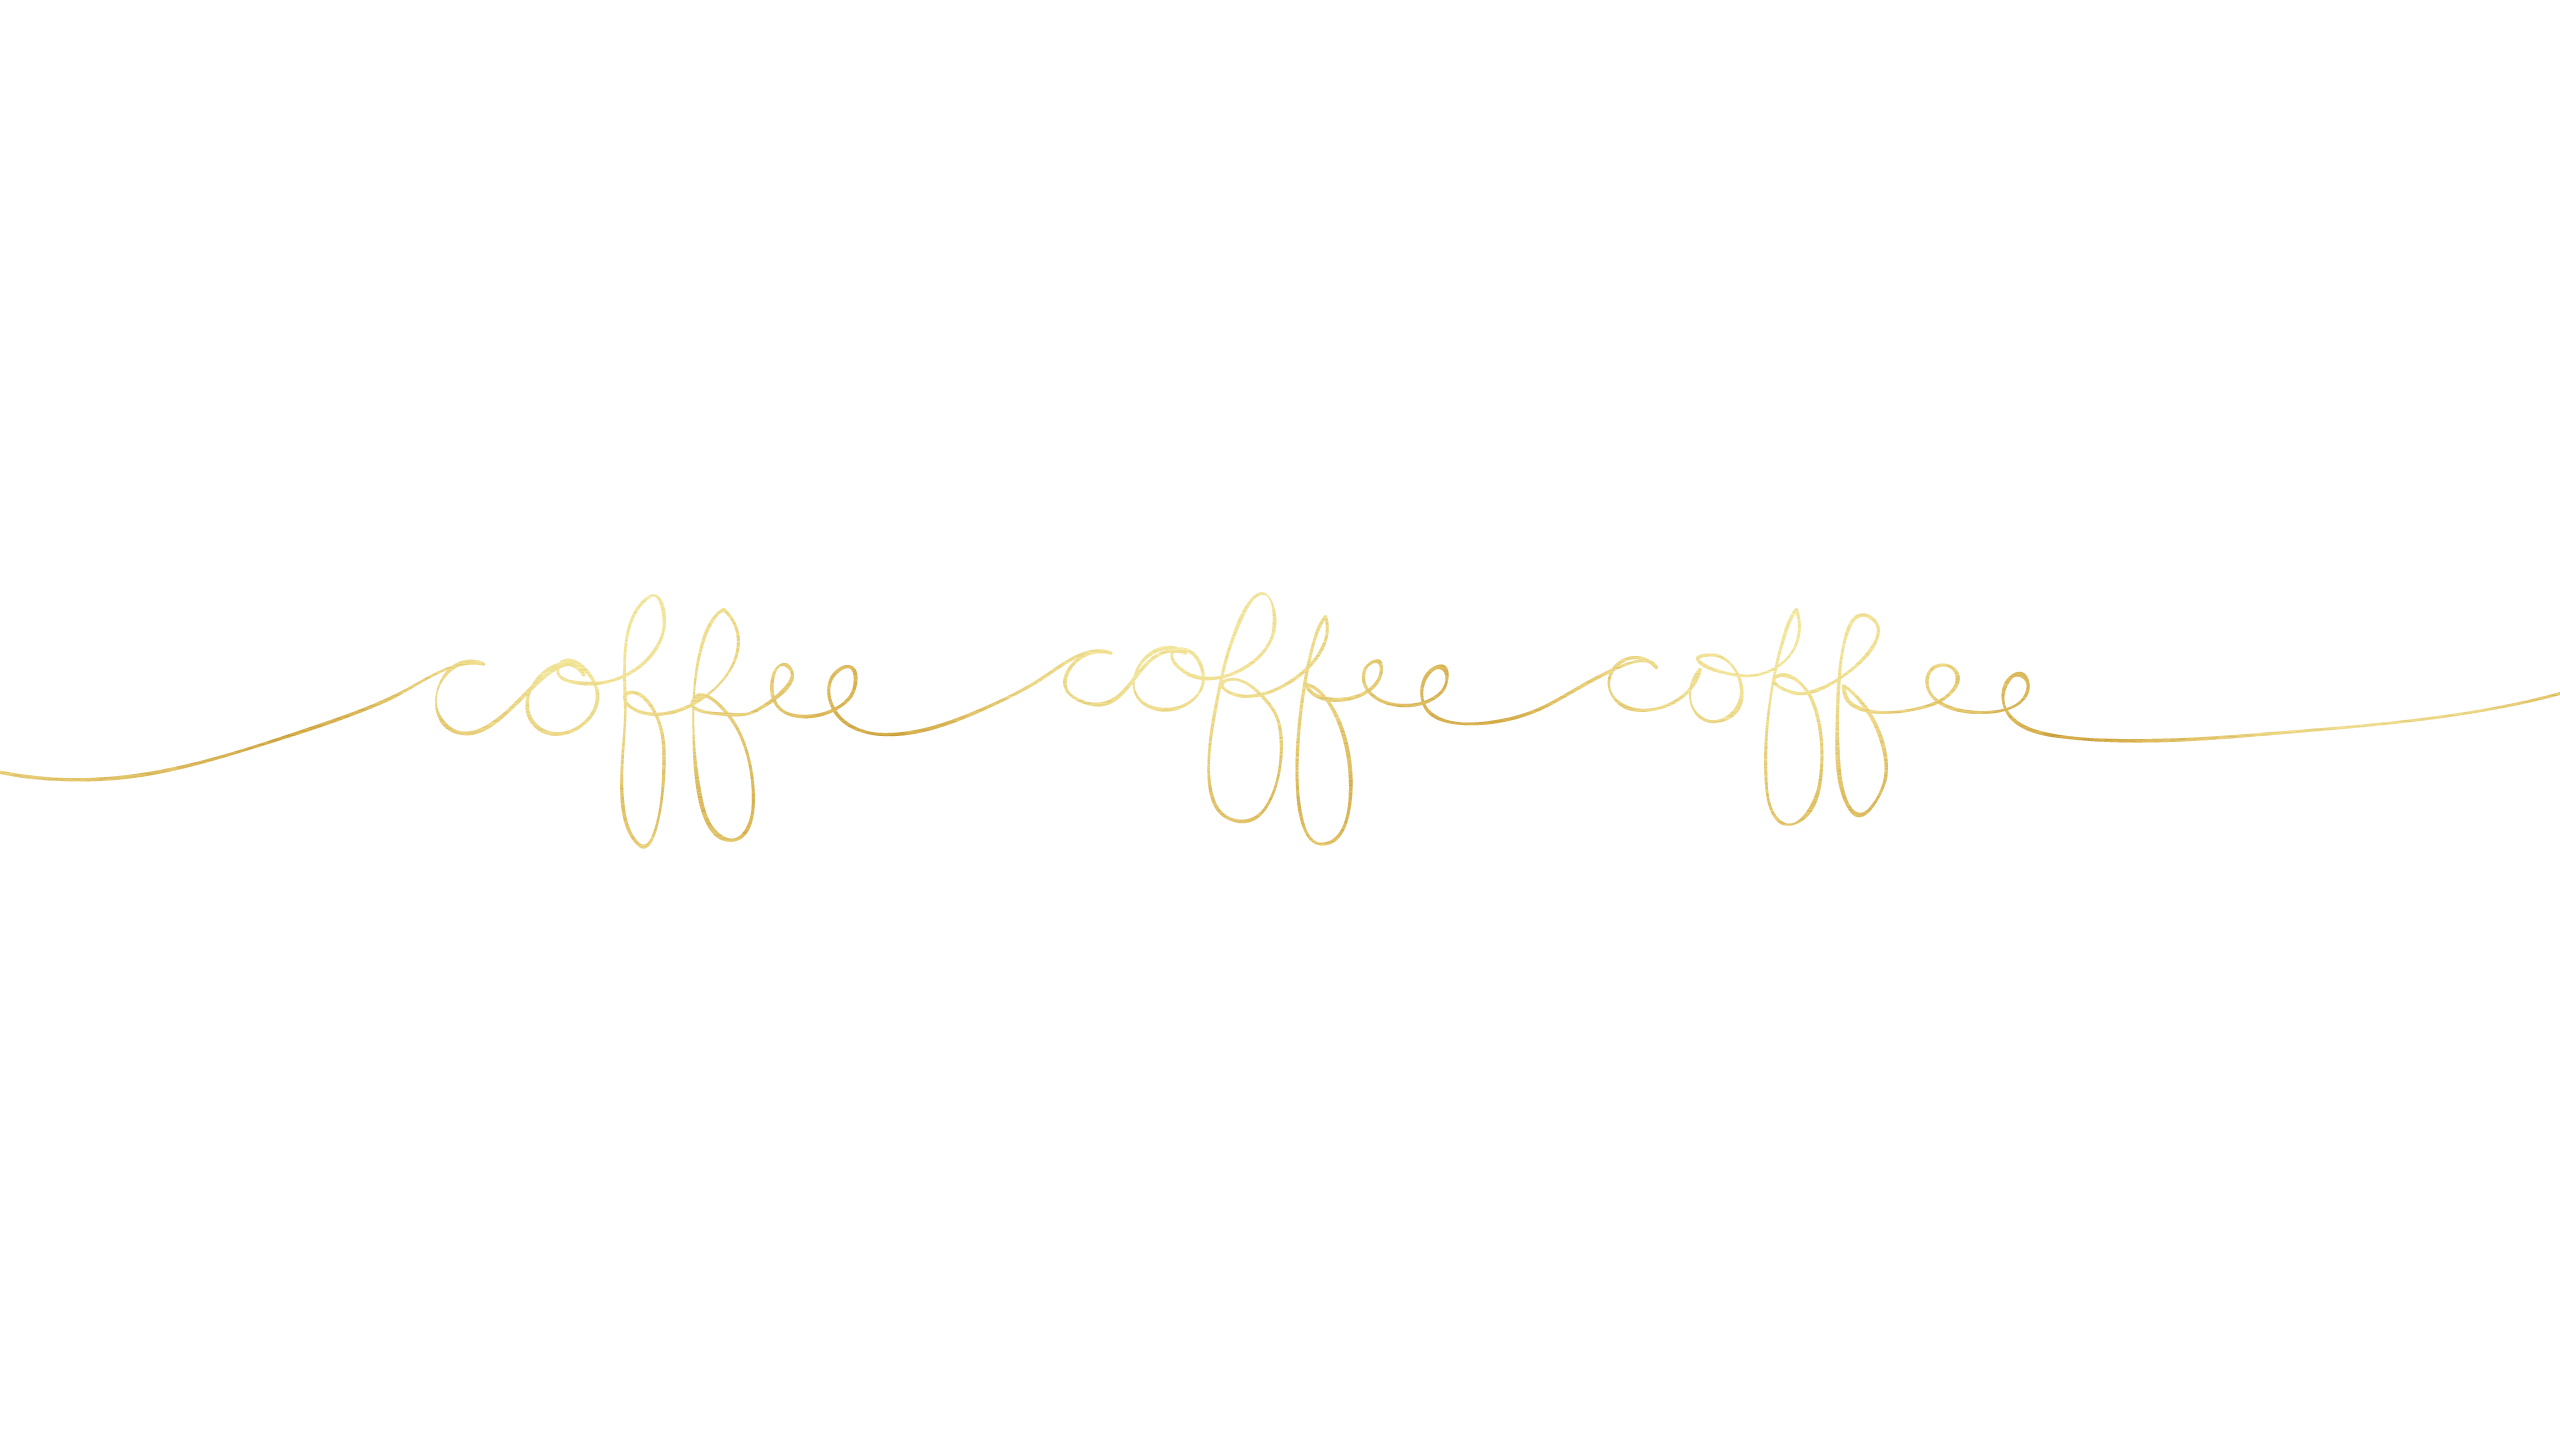 Coffee Minimalist Desktop Wallpaper Gold 8930 2560x1440 Pixels